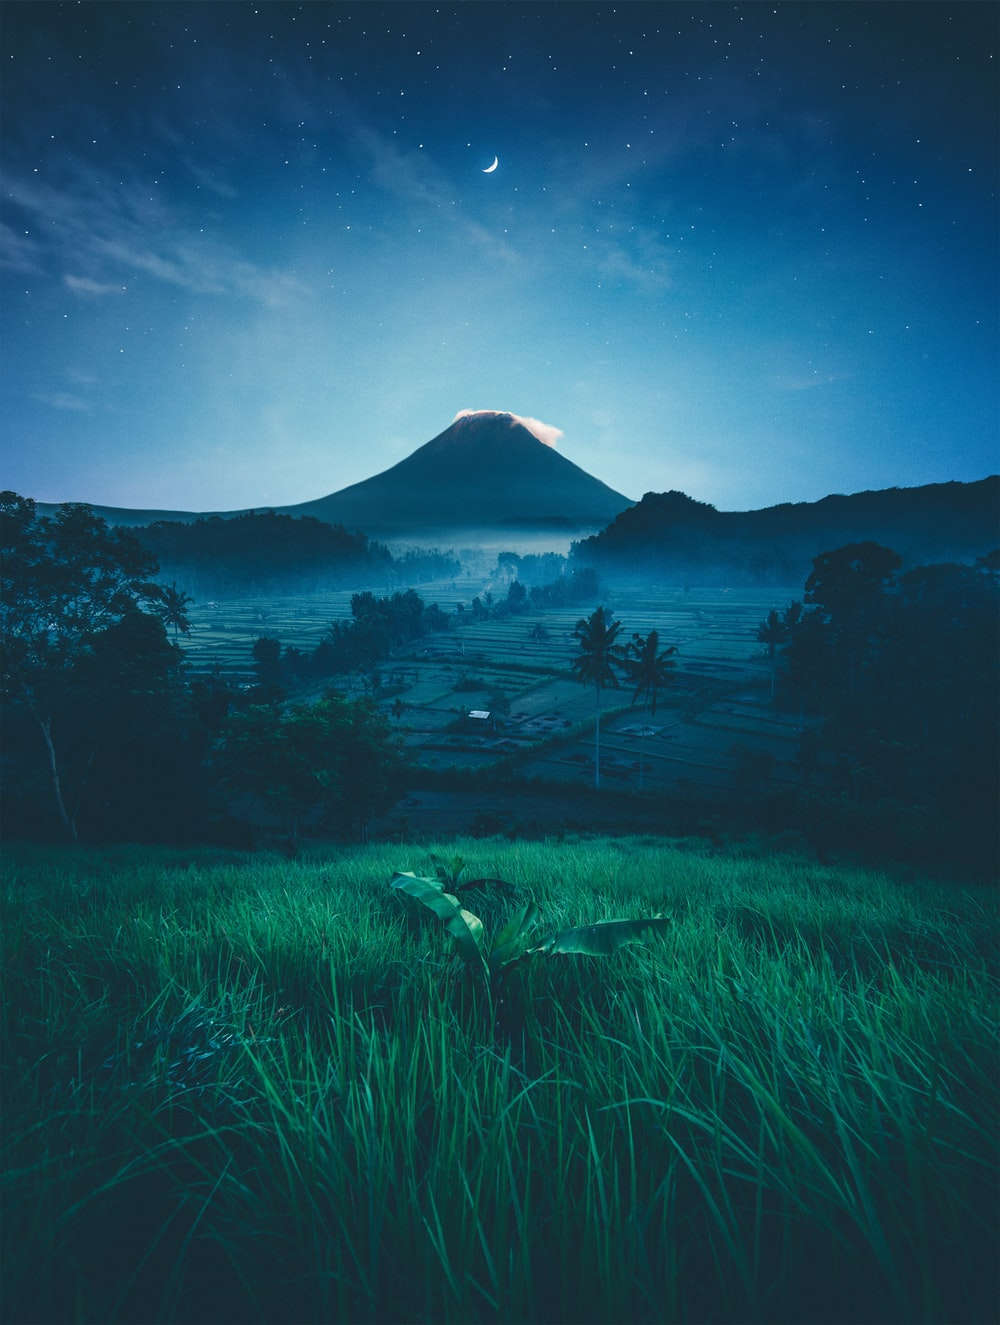 mountain near green trees at night - Landscapes 11 Best Free Landscape, Wallpaper, Blue, And Explore